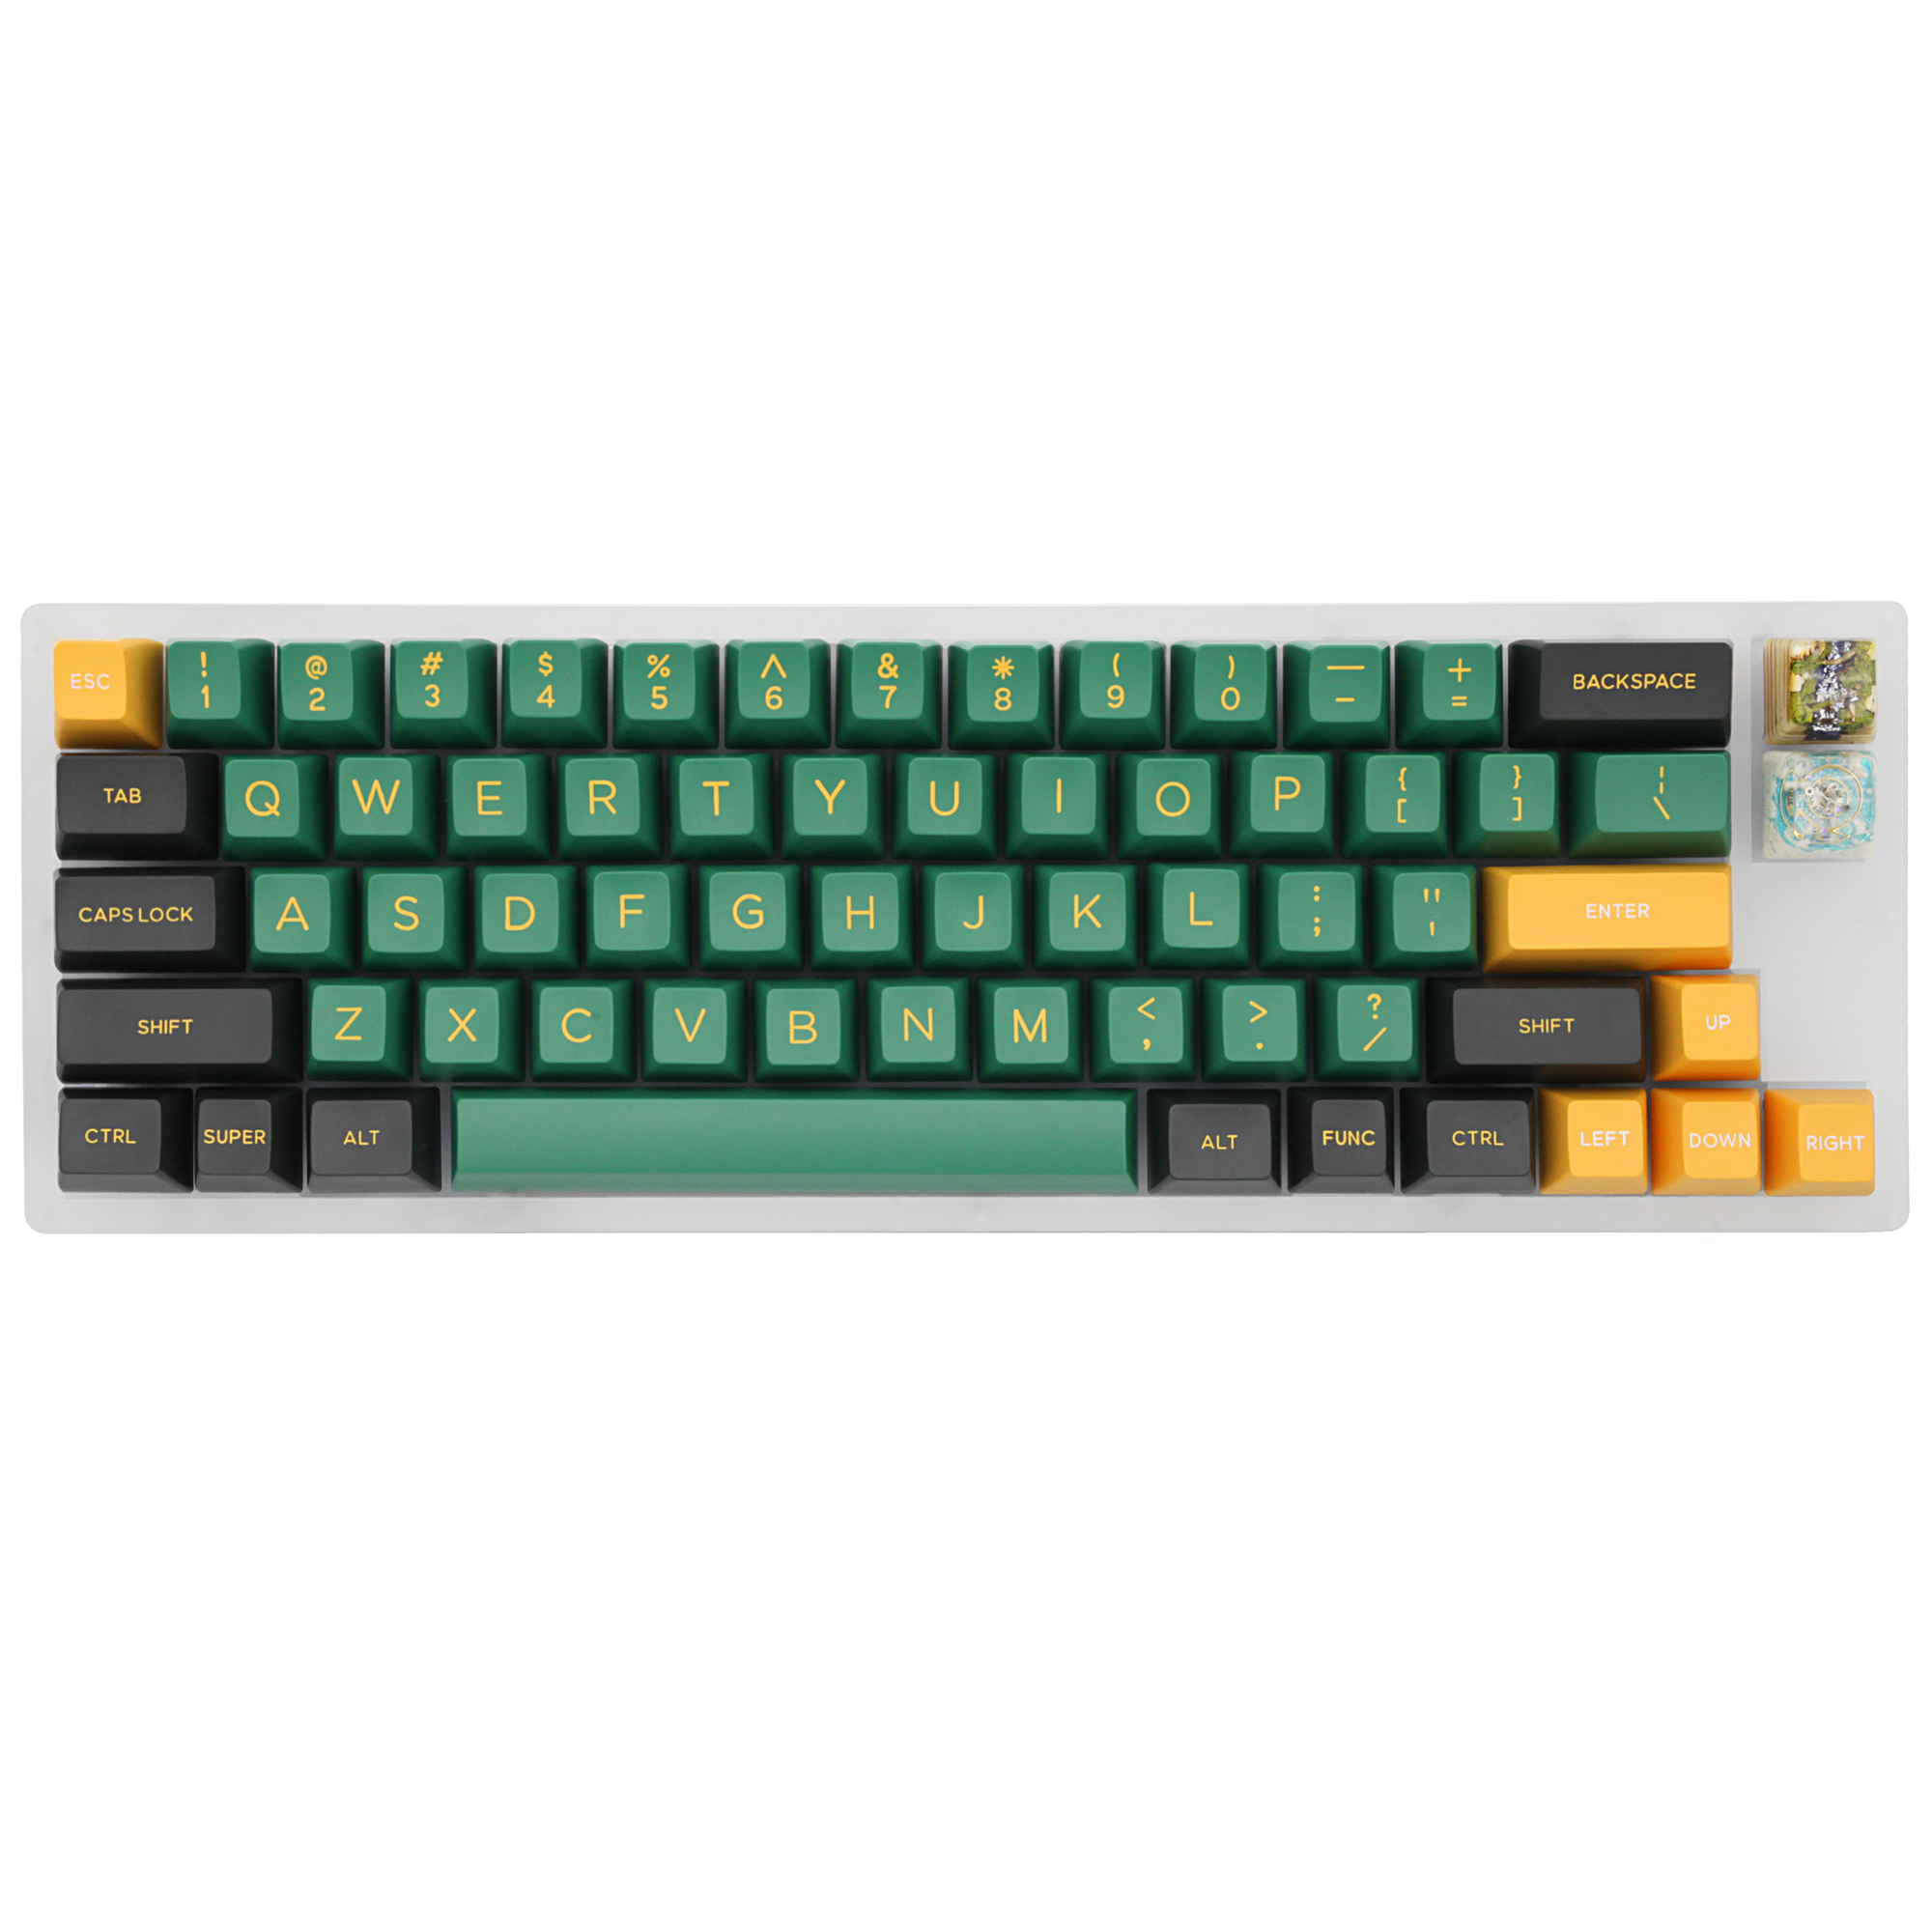 Hot Swappable YC66 Pcb Custom Mechanical Keyboard Rgb Smd Switch Leds Type C Usb Port  With Acrylic Case Rgb Side Light